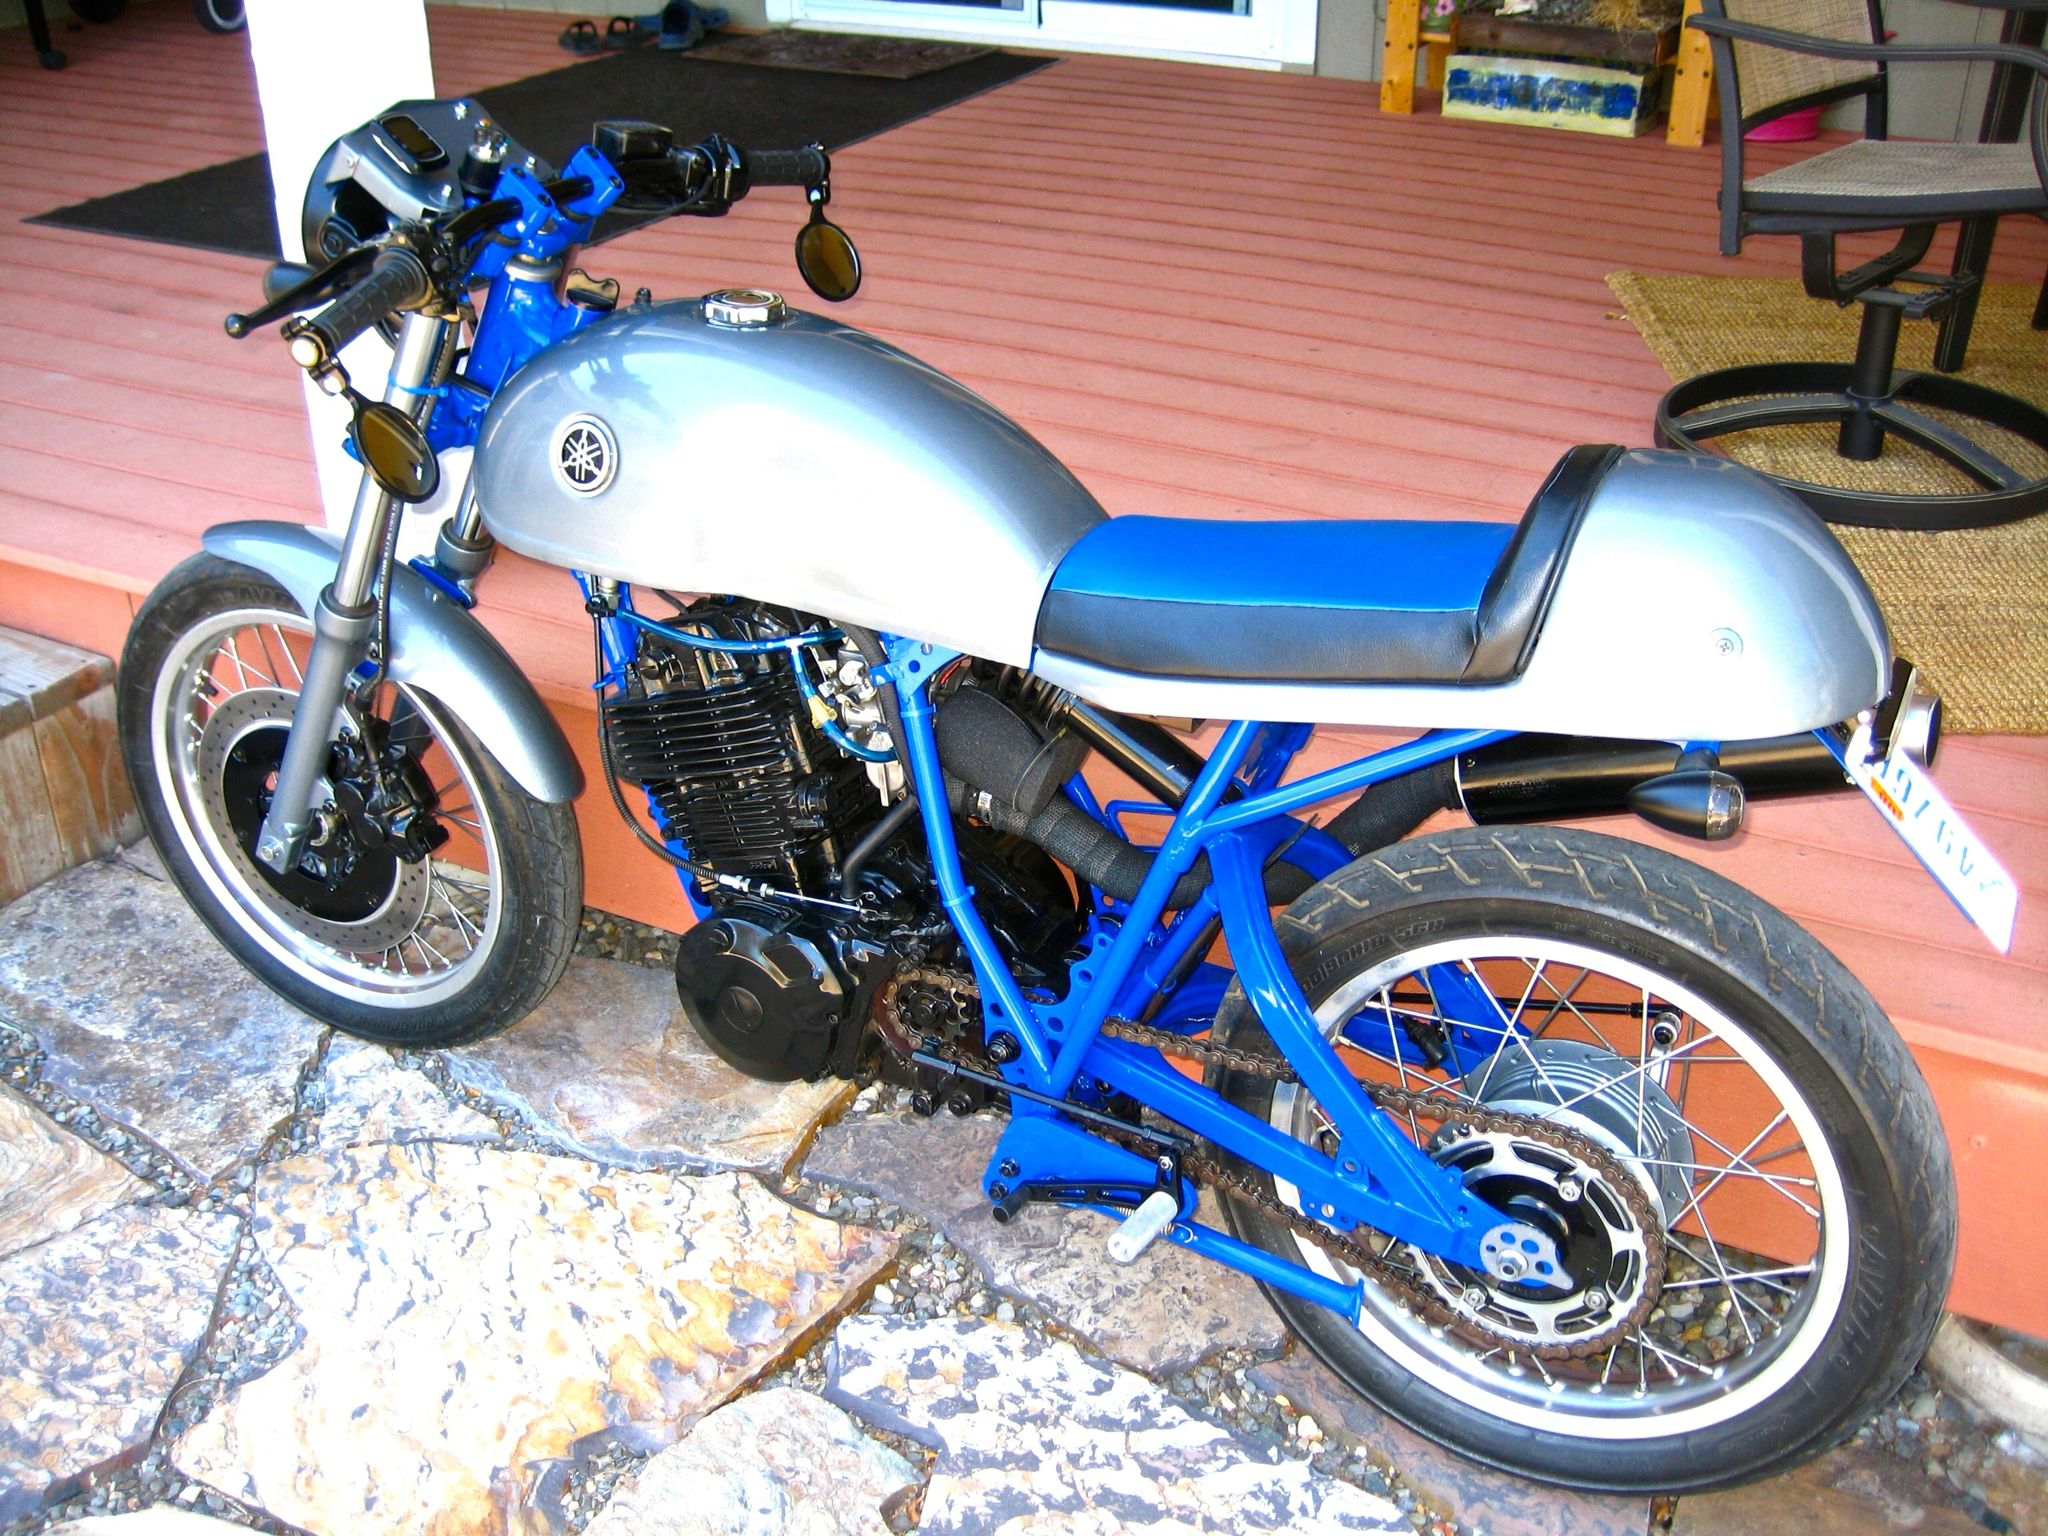 1982 Yamaha XT 550 cafe project by Gary | Cafe ideas | Motorcycle